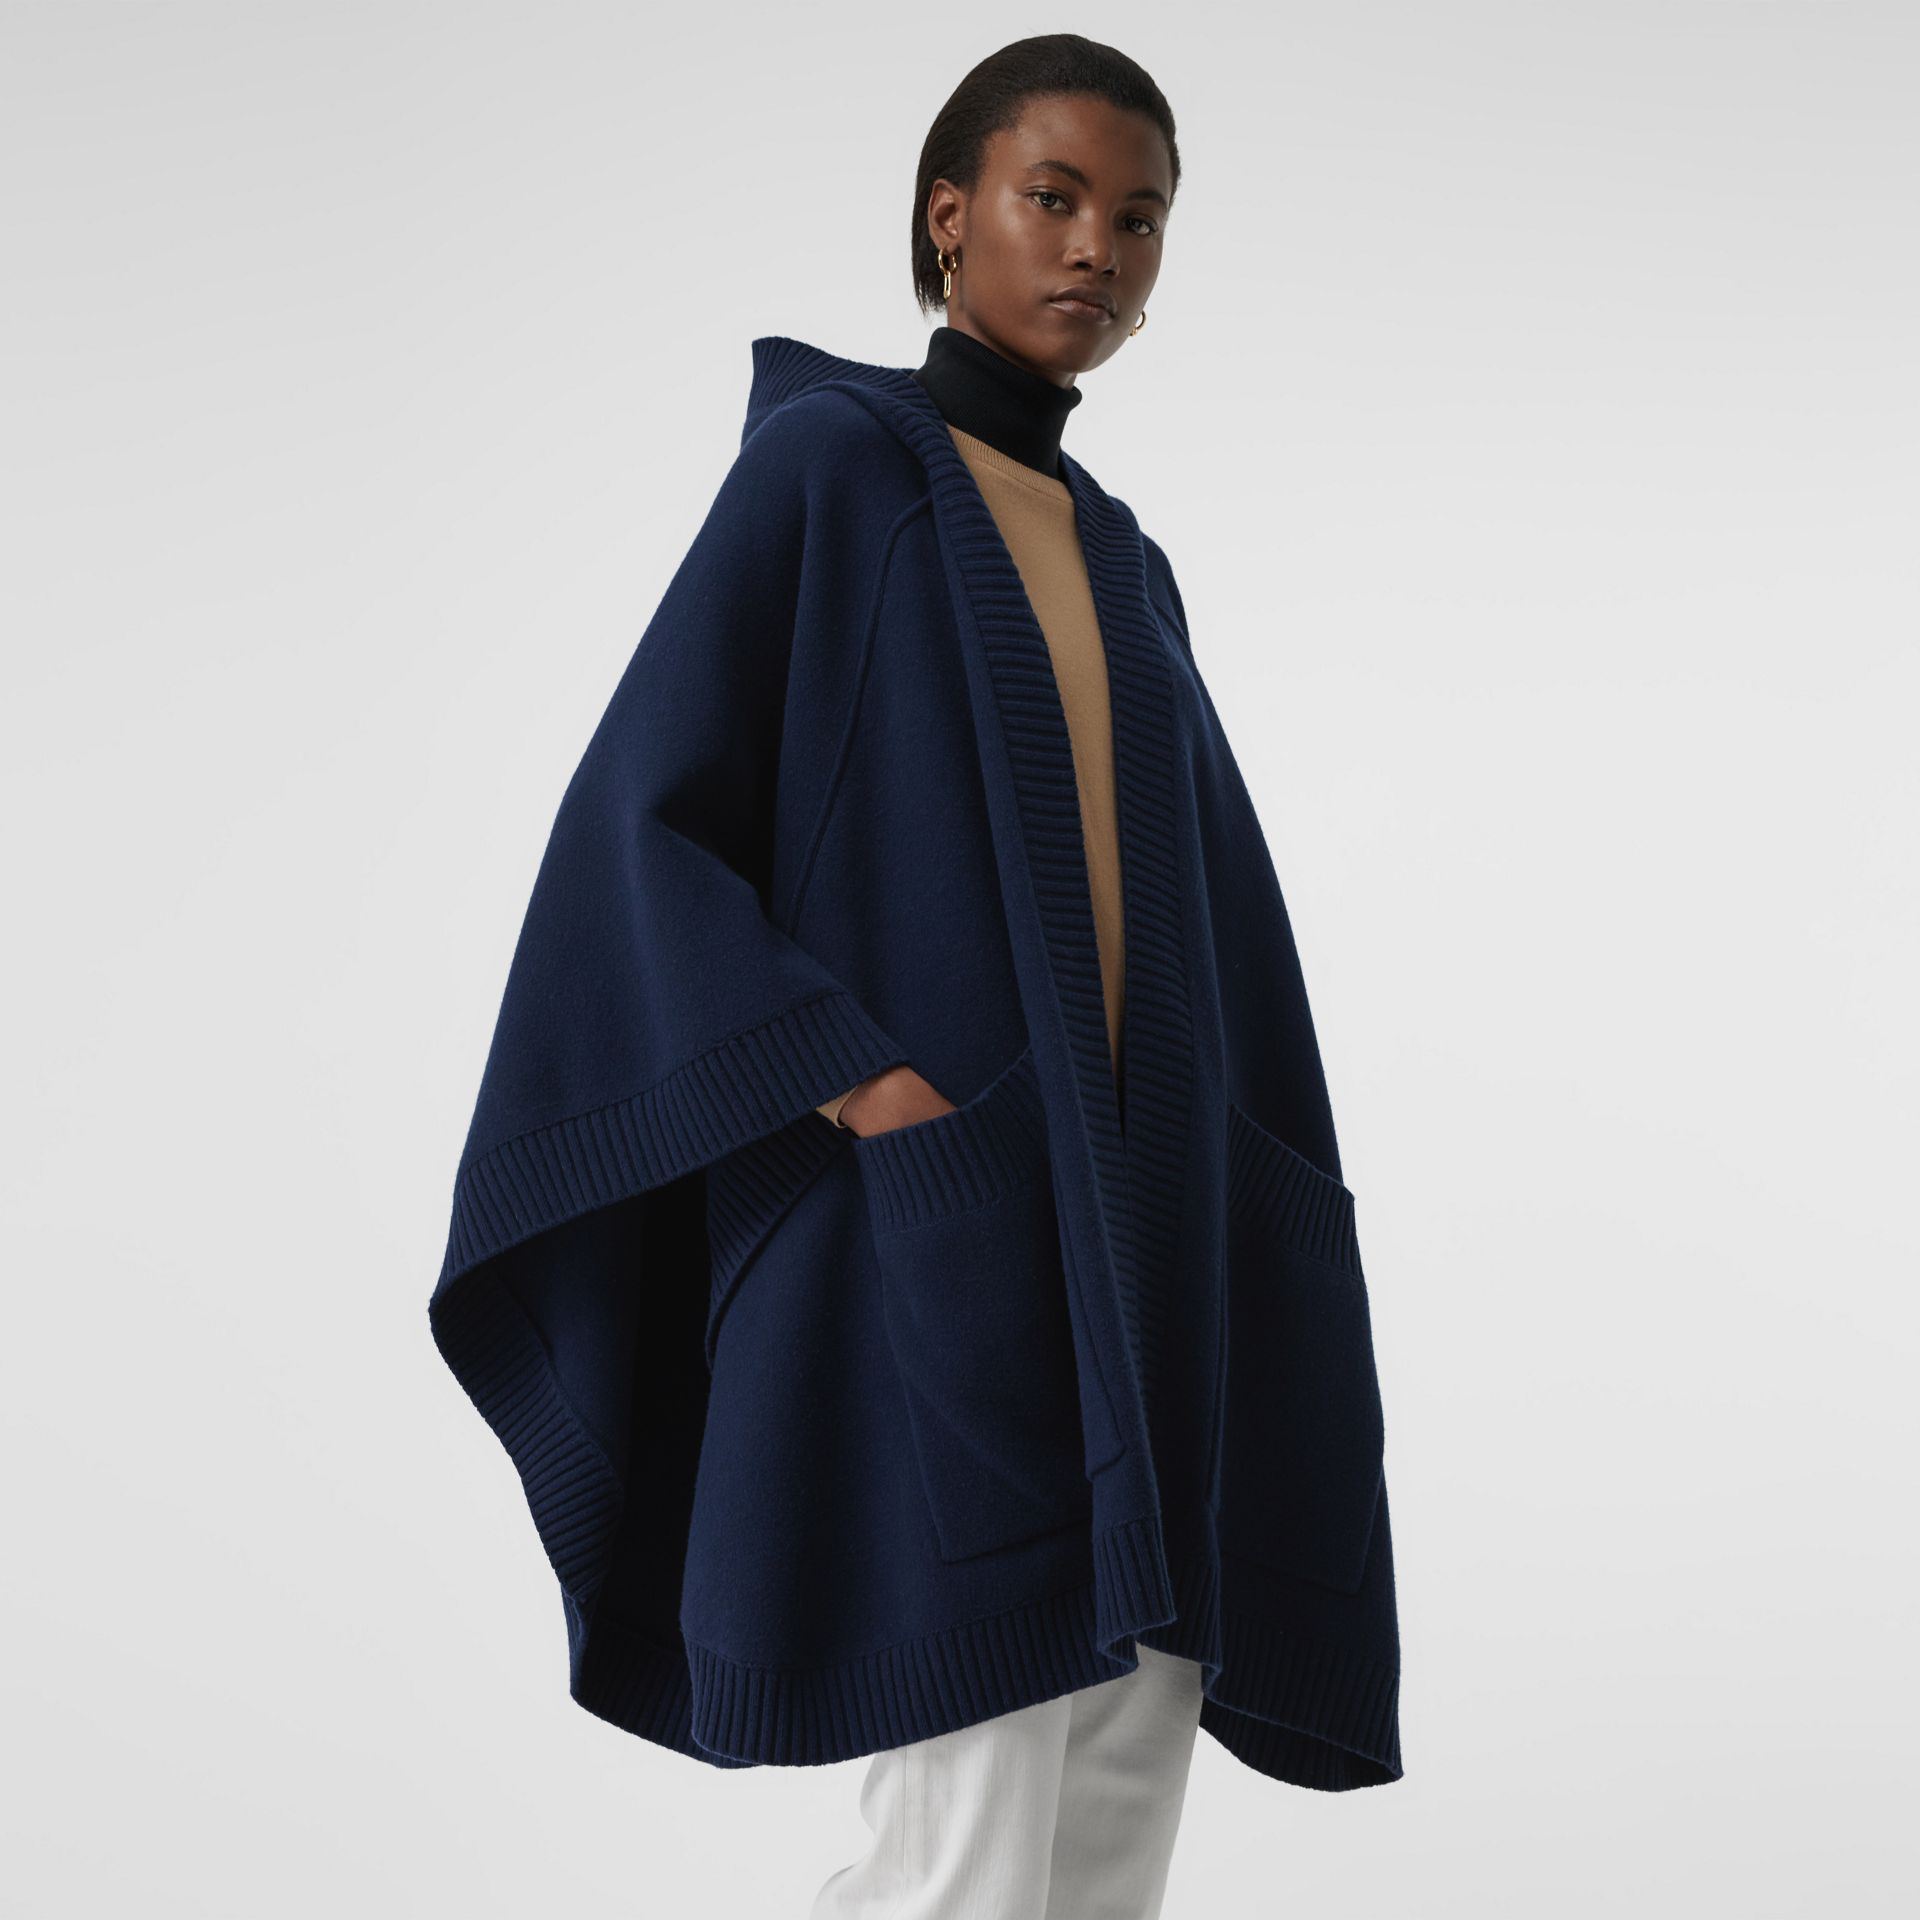 Crest Jacquard Wool Blend Hooded Cape in Navy - Women | Burberry Australia - gallery image 2